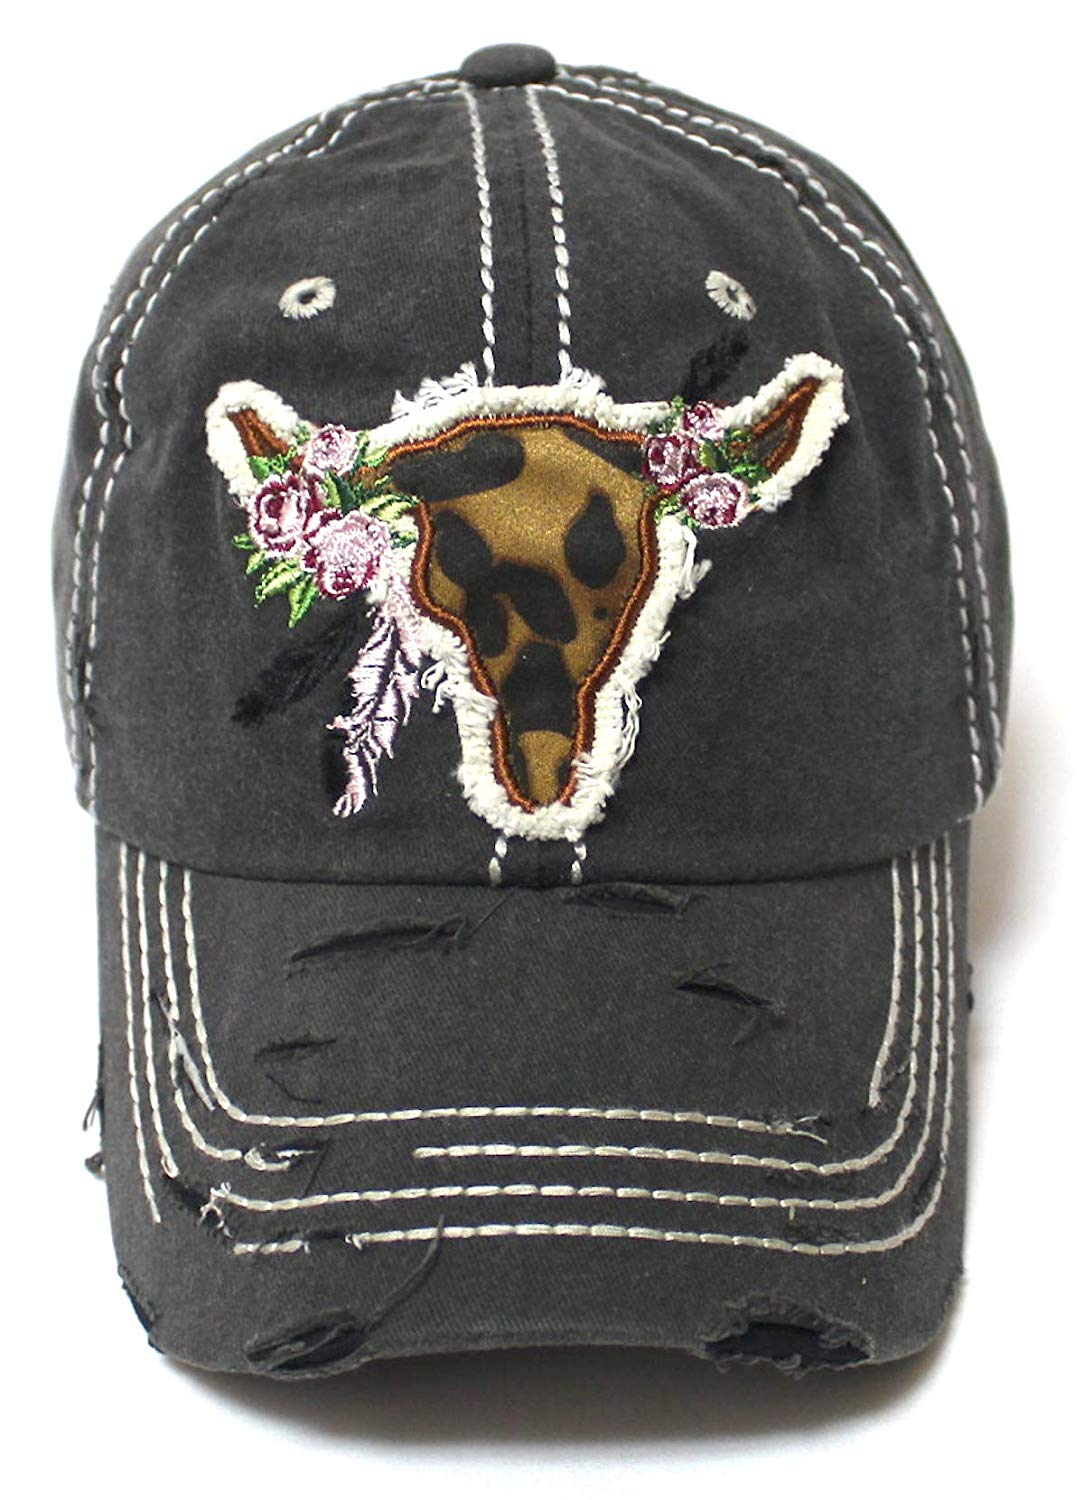 Women's Ballcap Leopard Print, Floral Cow Skull Feather Patch Embroidery Distressed Vintage Hat, Black - Caps 'N Vintage